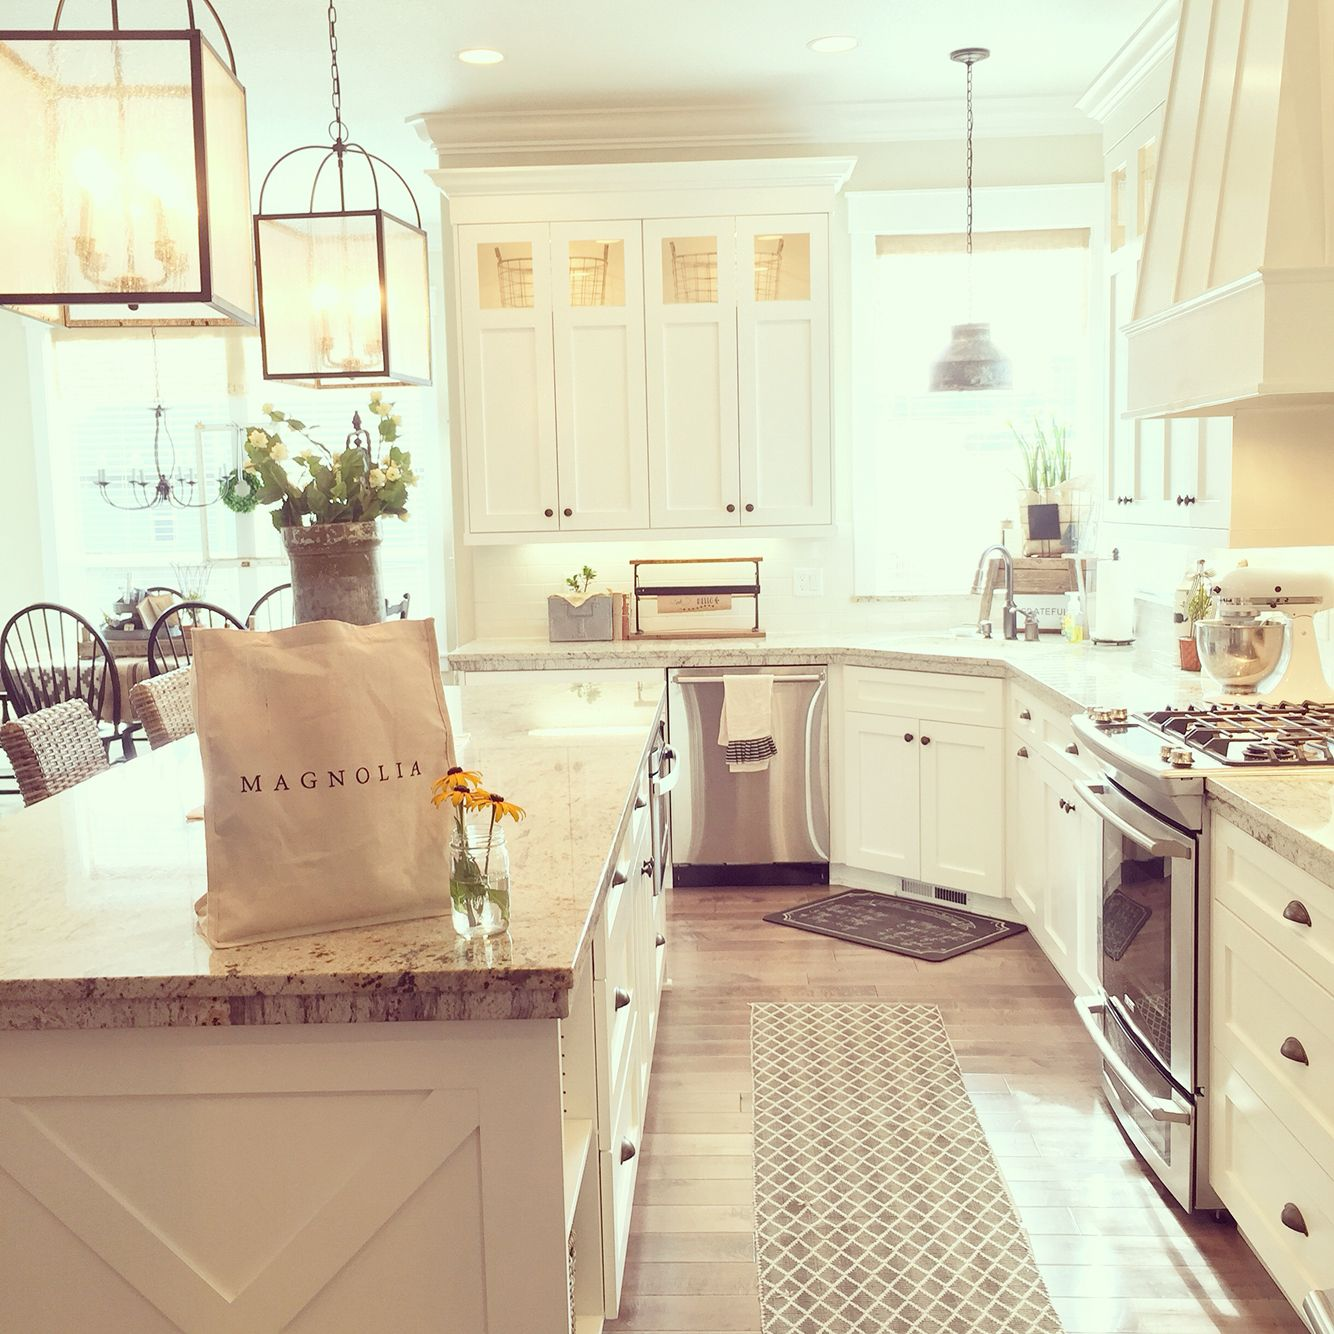 Light, Bright, And Airy Was The Goal In This Modern Farmhouse Kitchen. Greyed Hardwood Floors